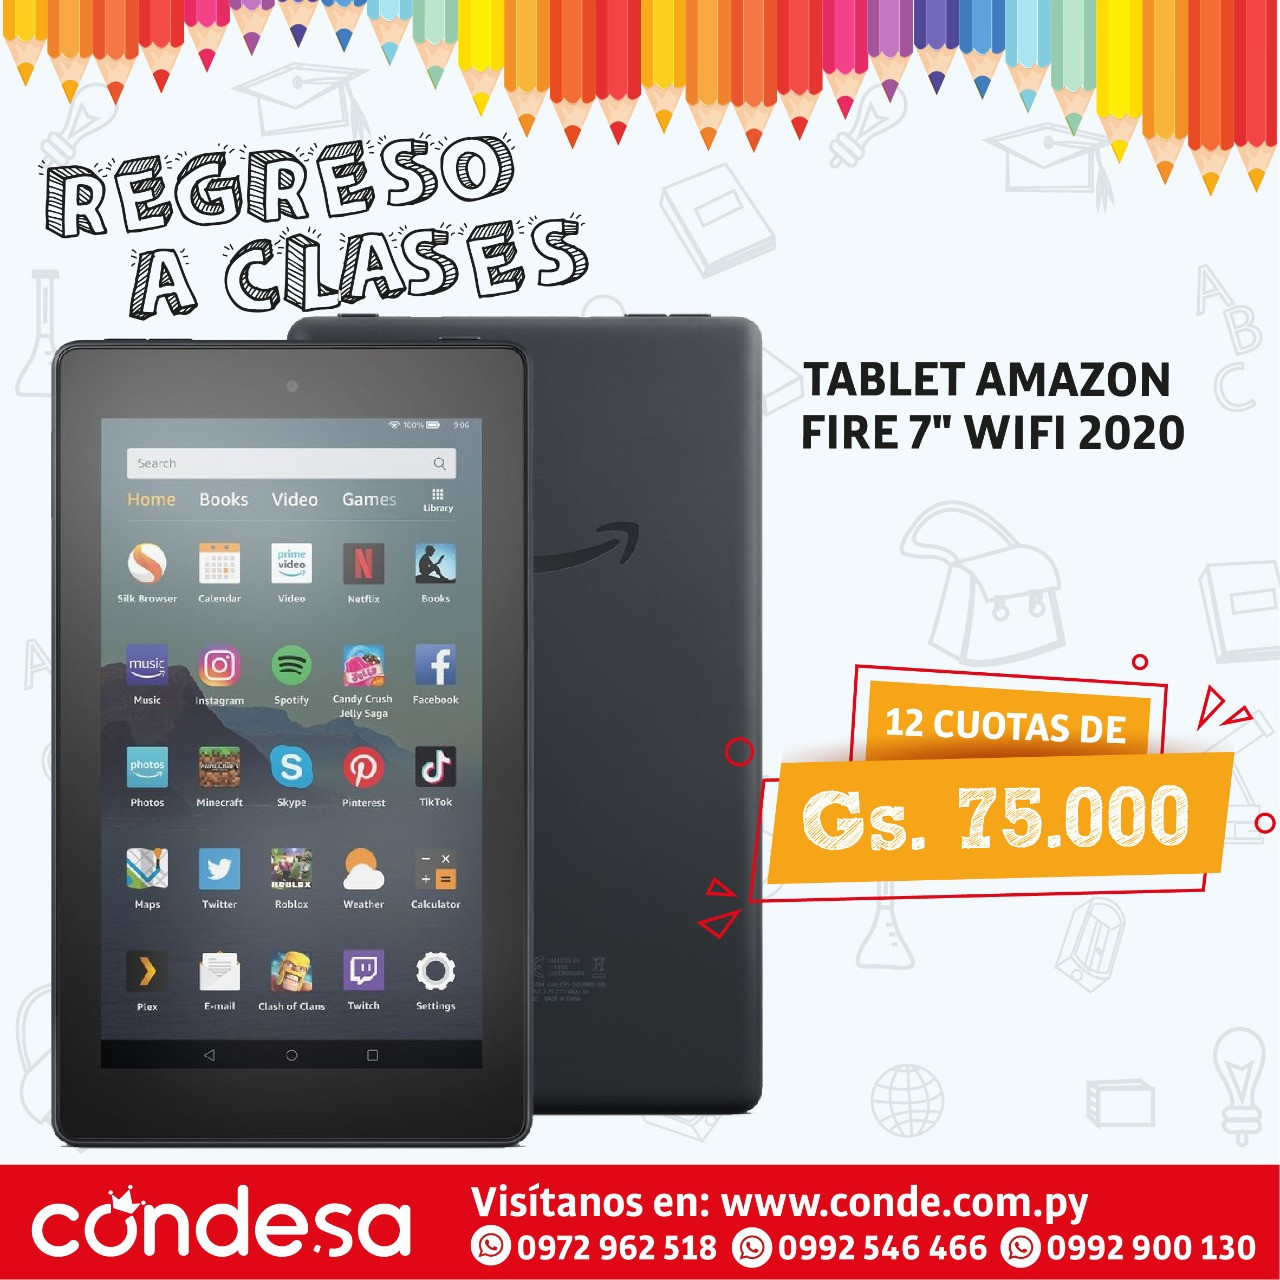 TABLET AMAZON FIRE 7 WIFI 2020